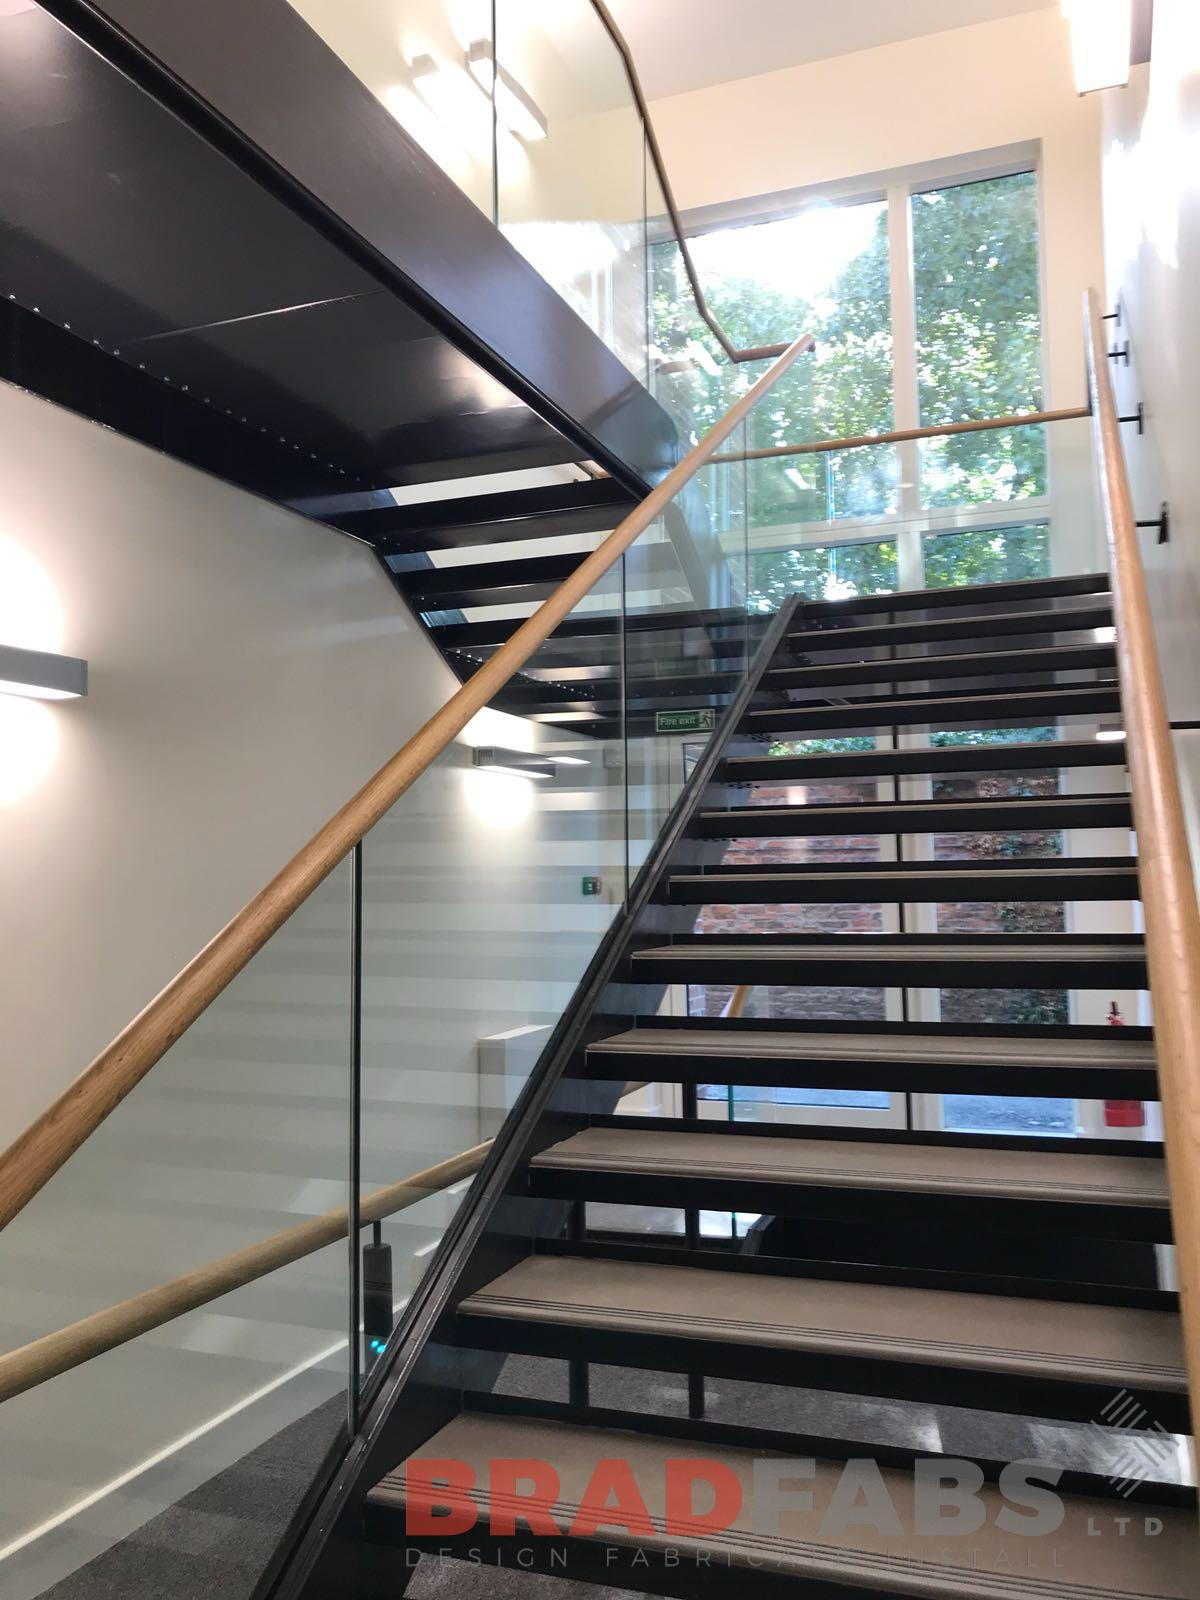 Straight staircase, open treads, infinity glass balustrade, wooden handrail